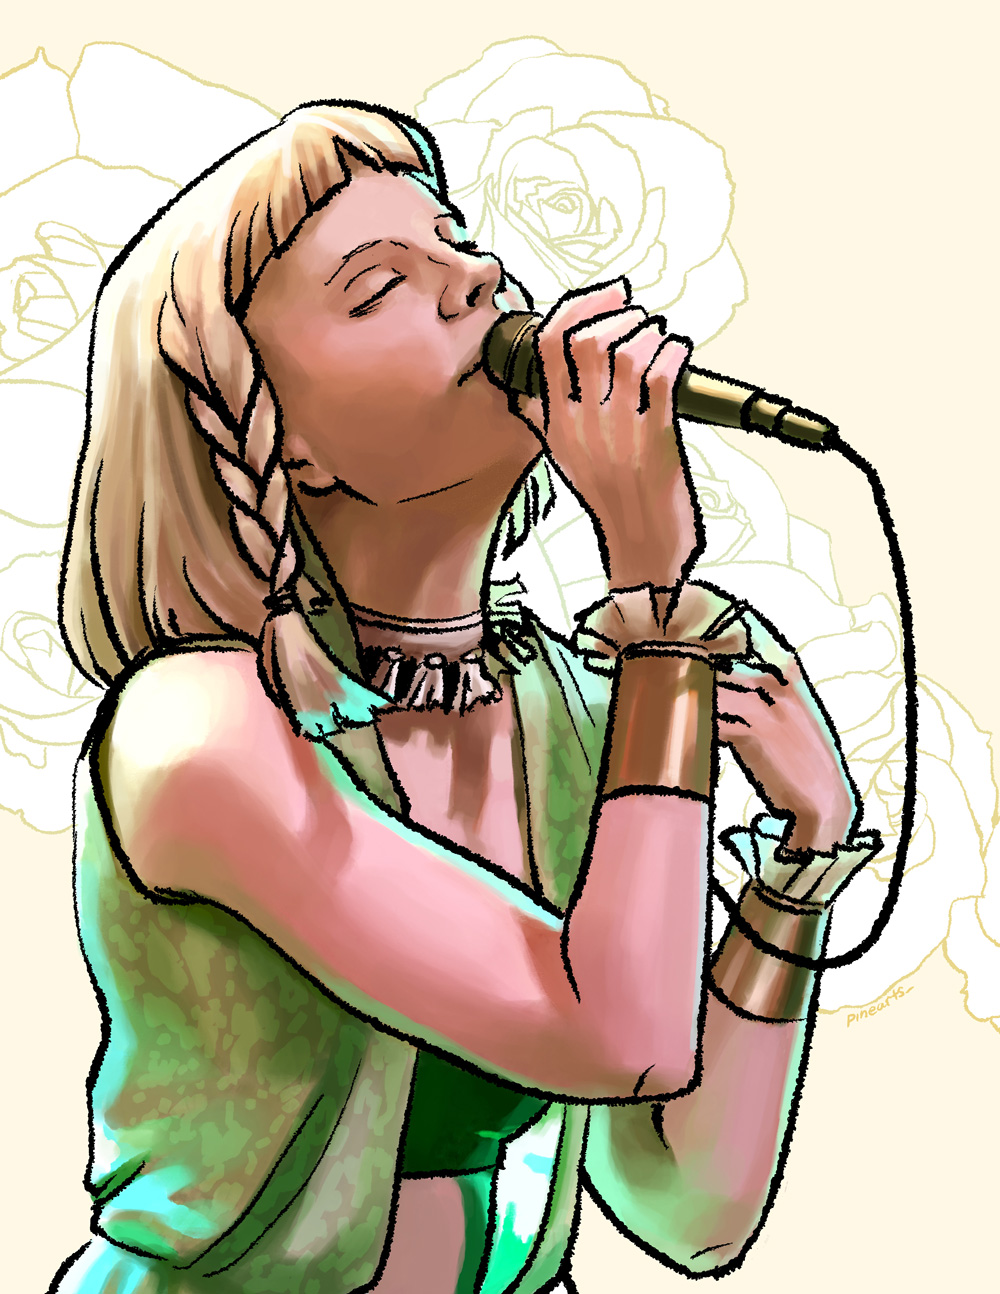 A painting of the singer Aurora Aksnes, referenced from own photo.